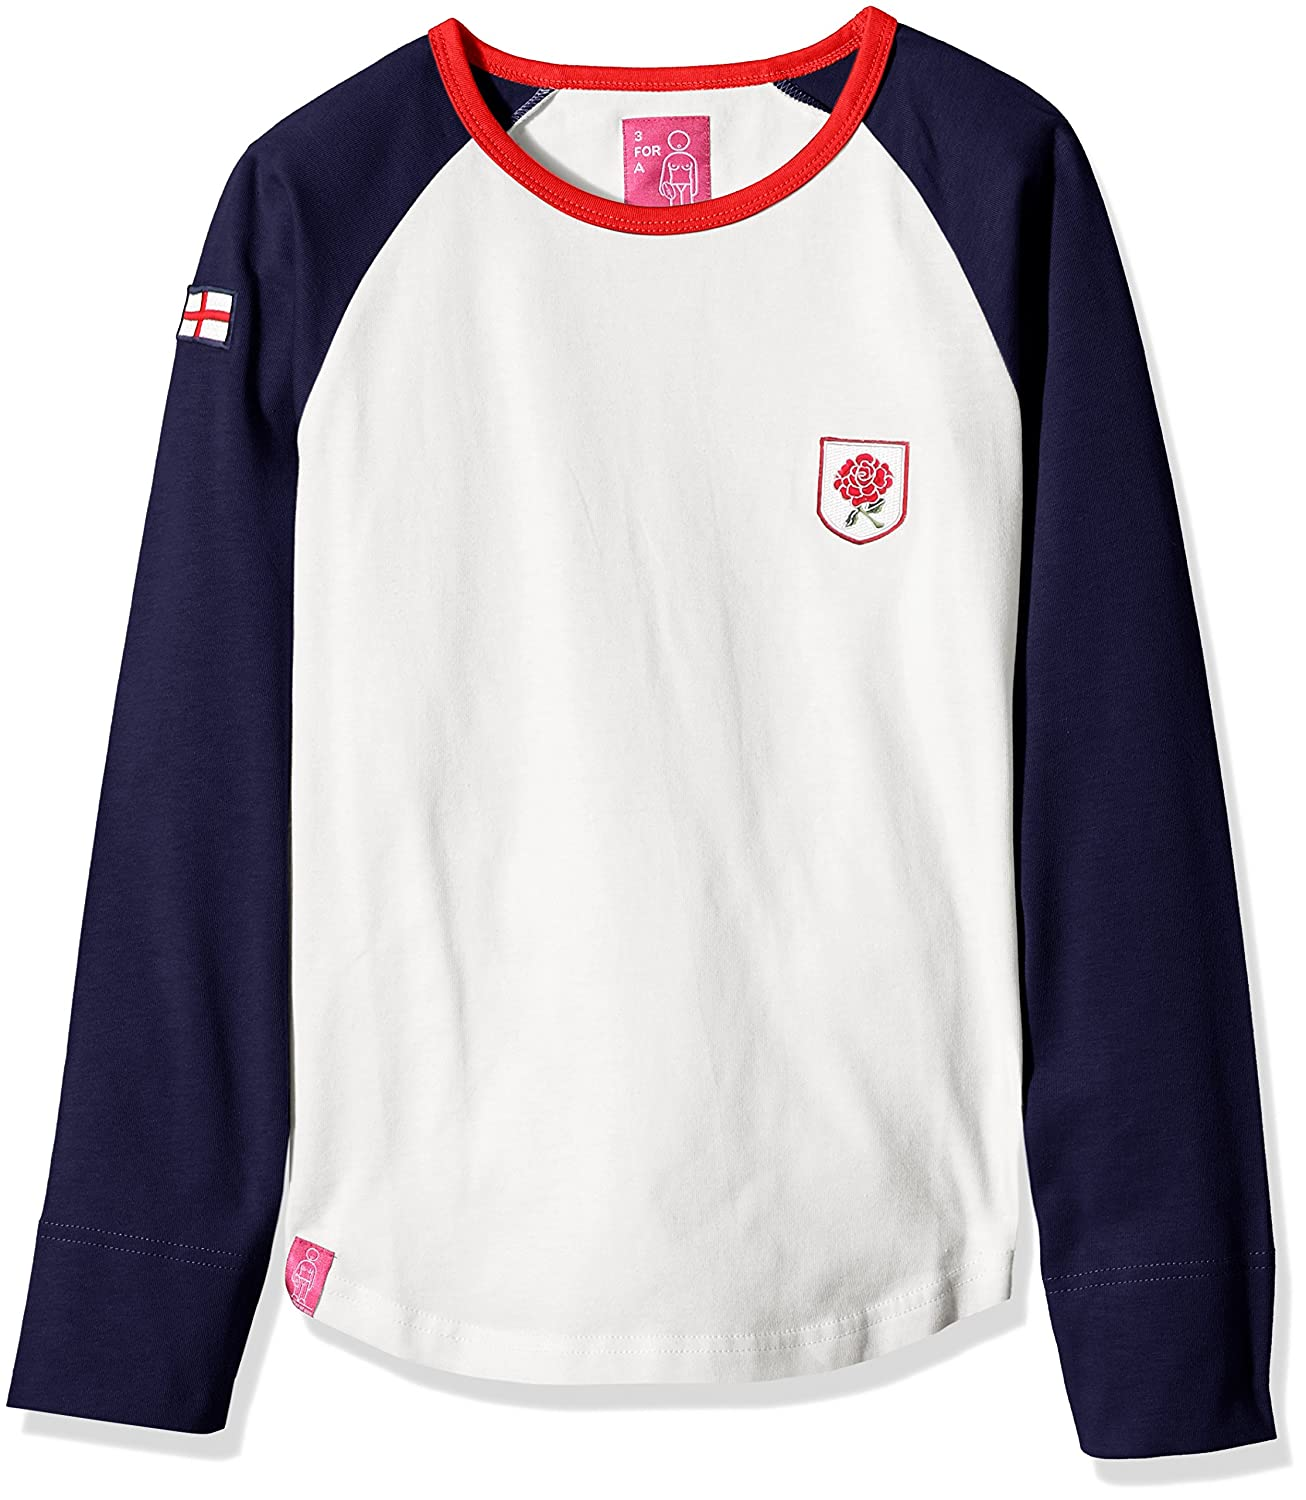 3 for a Girl Women's English Rugby Long Sleeve T-Shirt